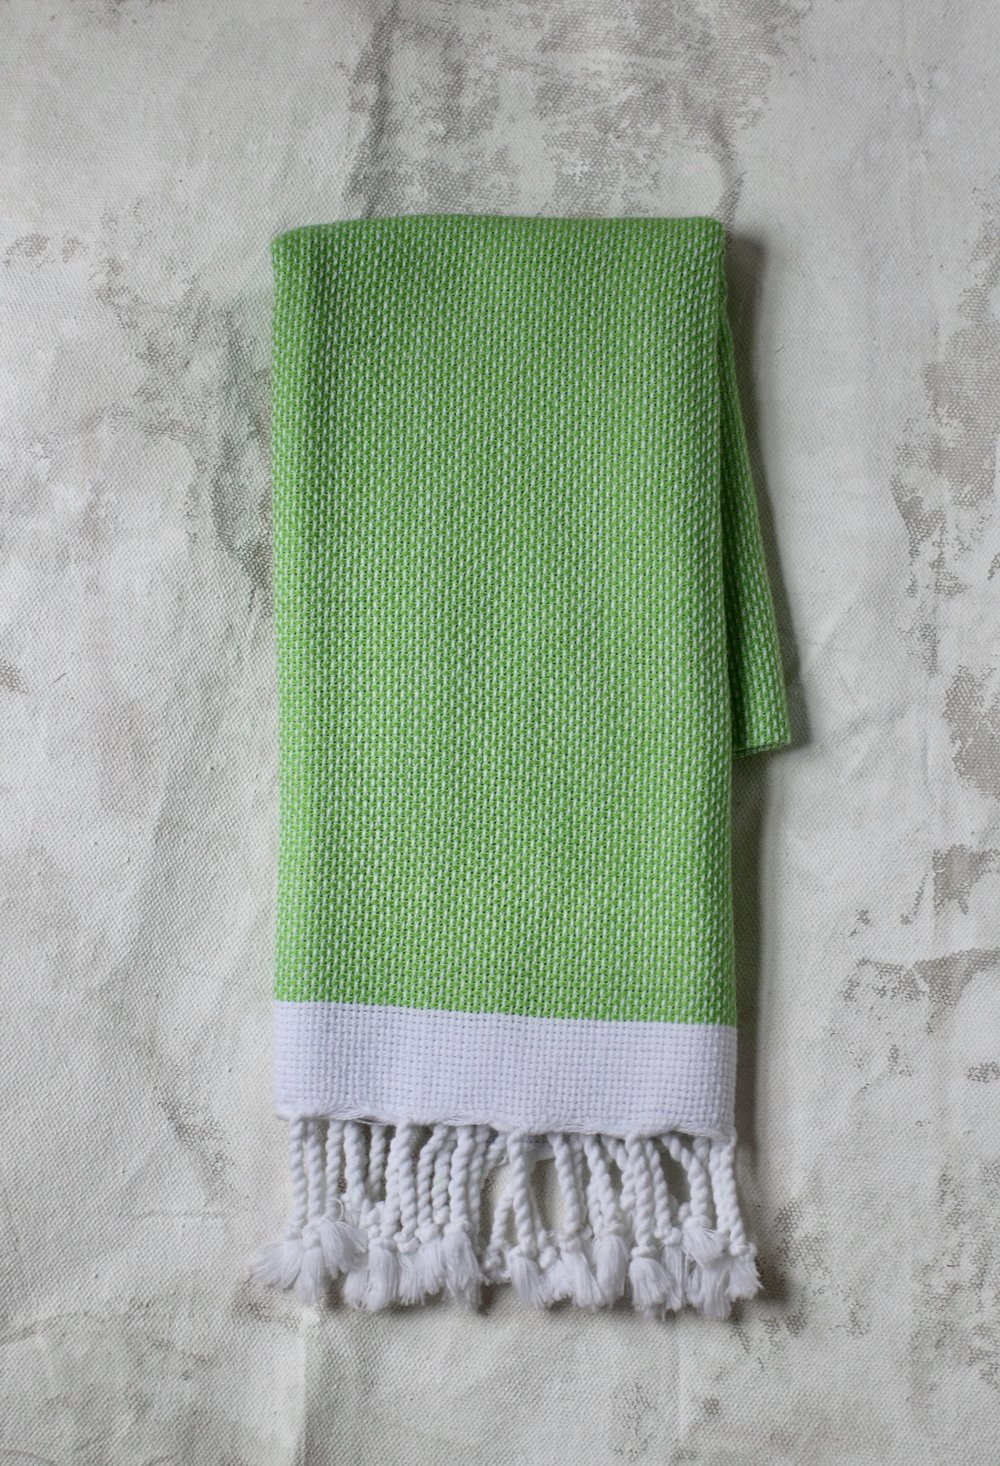 Large Knit Peskir - Bright Green $22